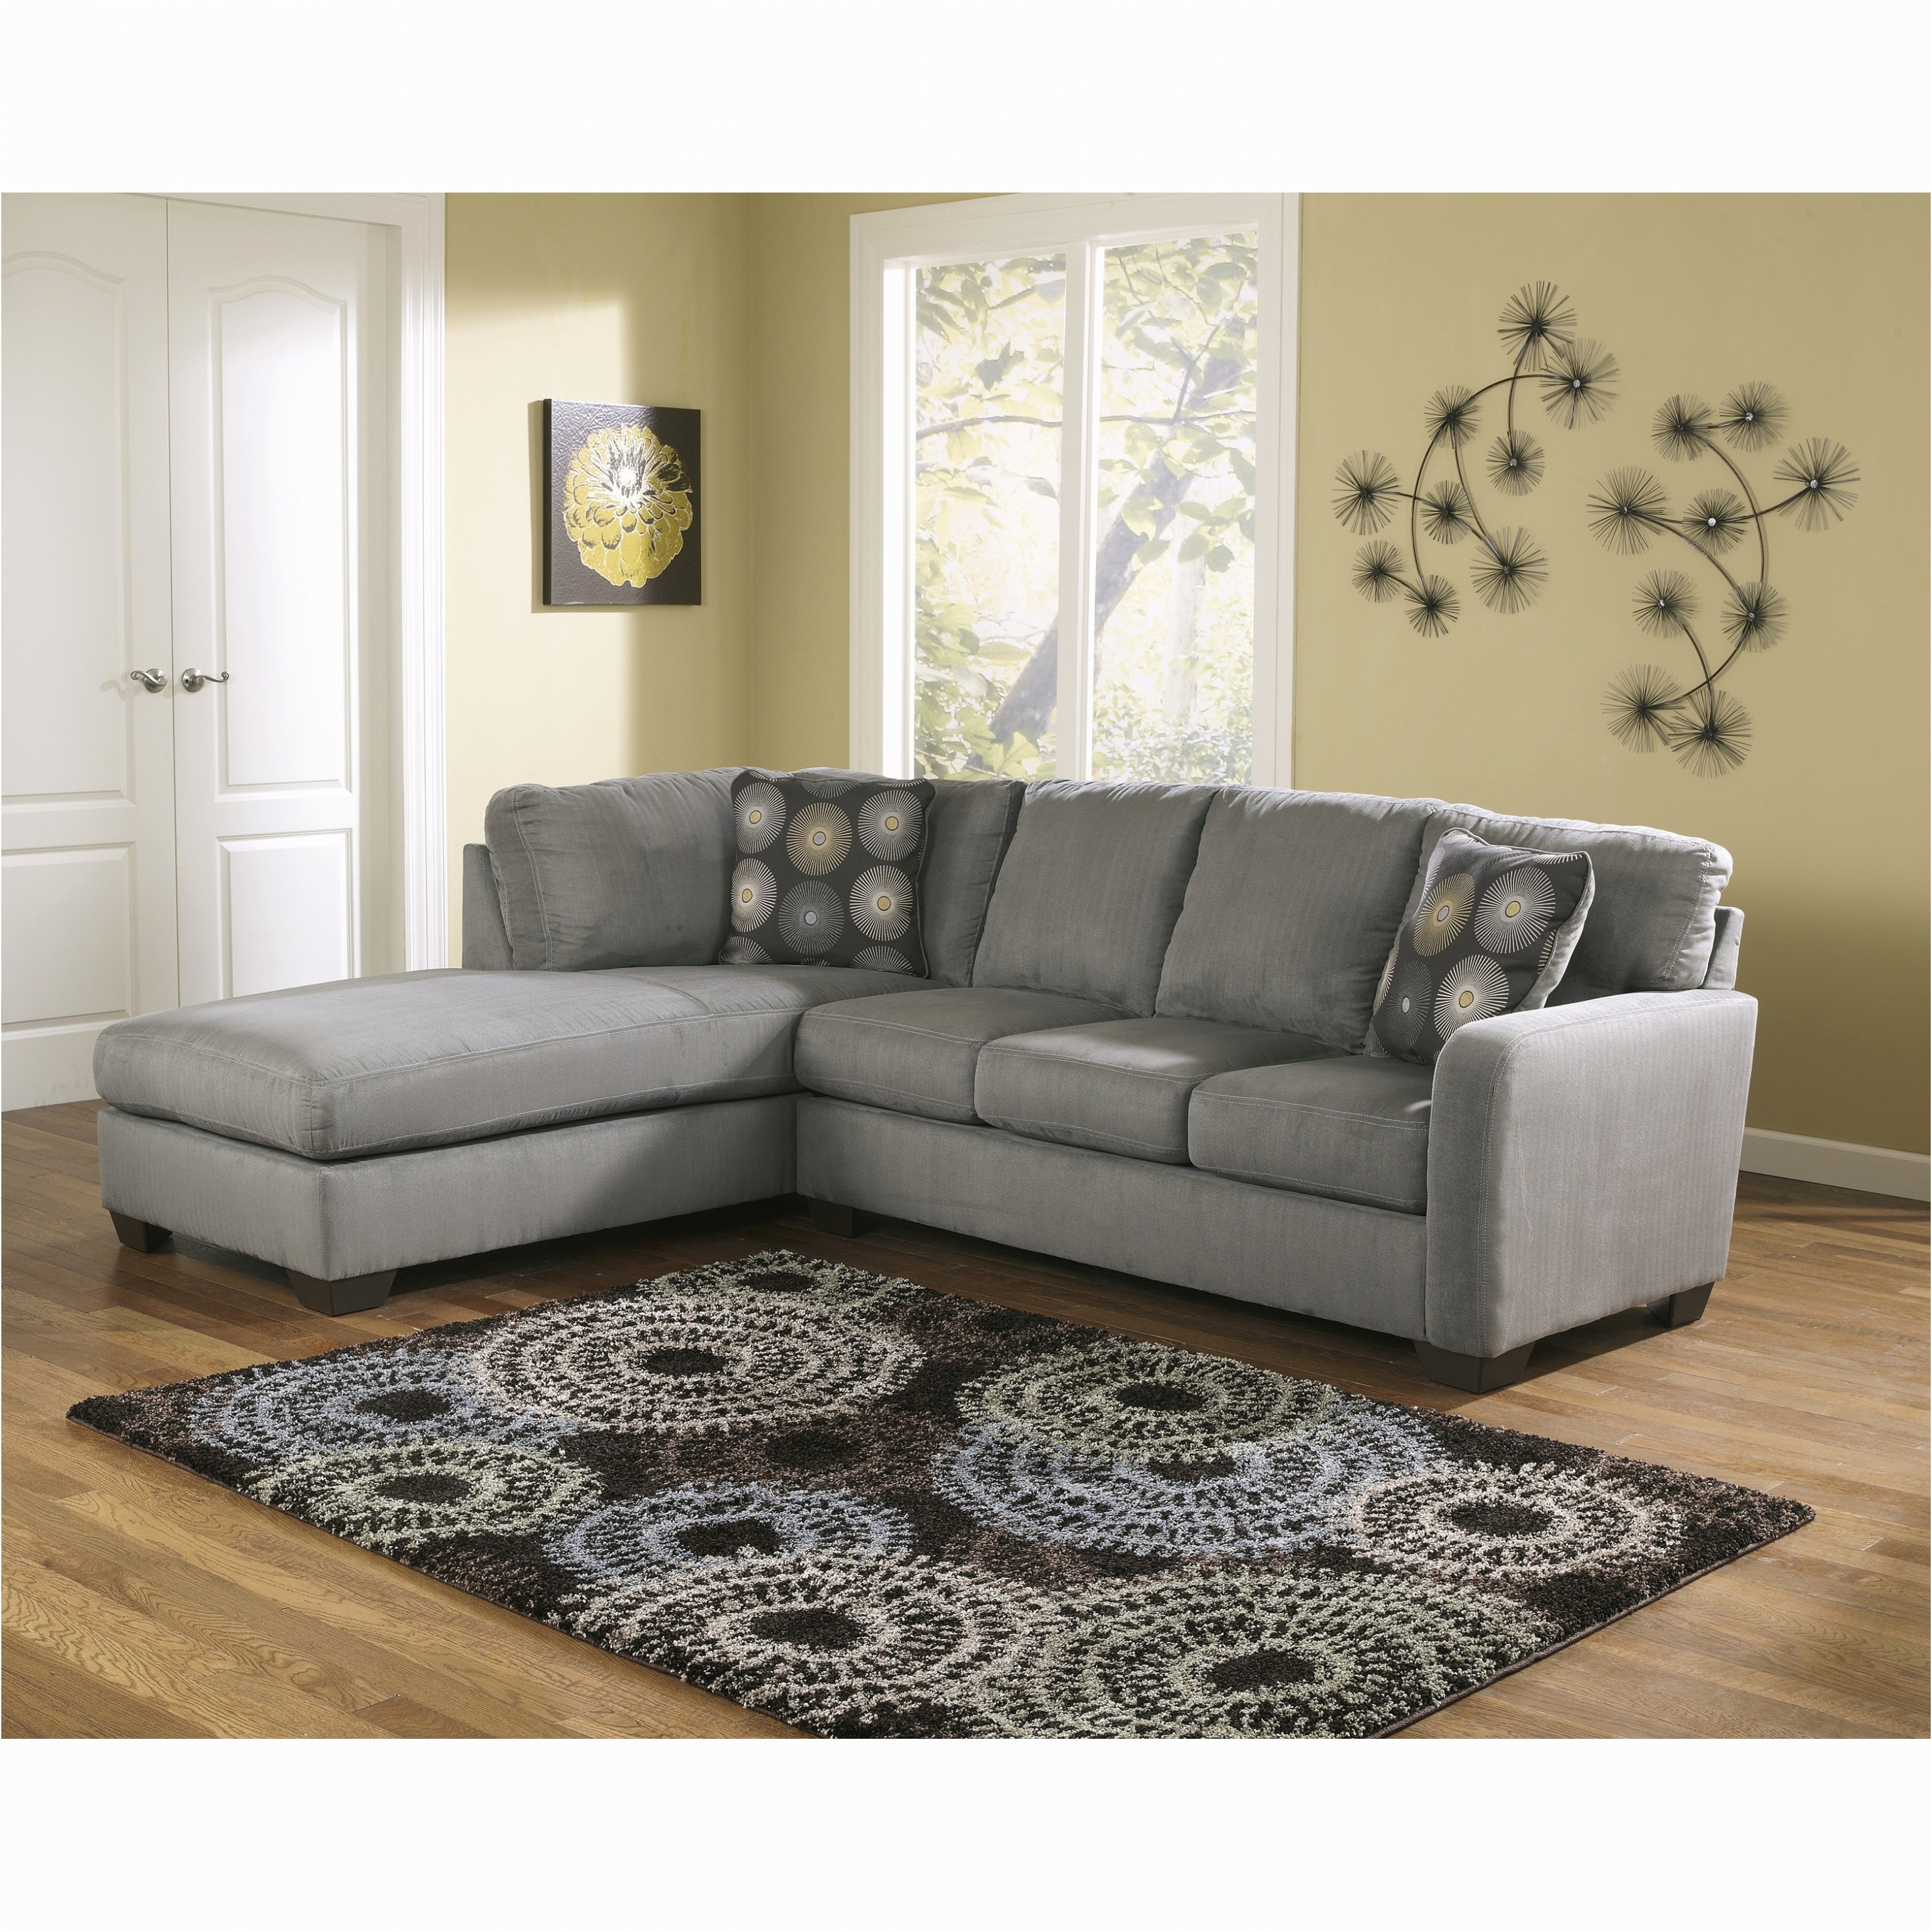 Sofa: Furniture : Awesome Sectional Couch Under 500 Awesome Cheap regarding Sectional Sofas Under 400 (Image 12 of 15)